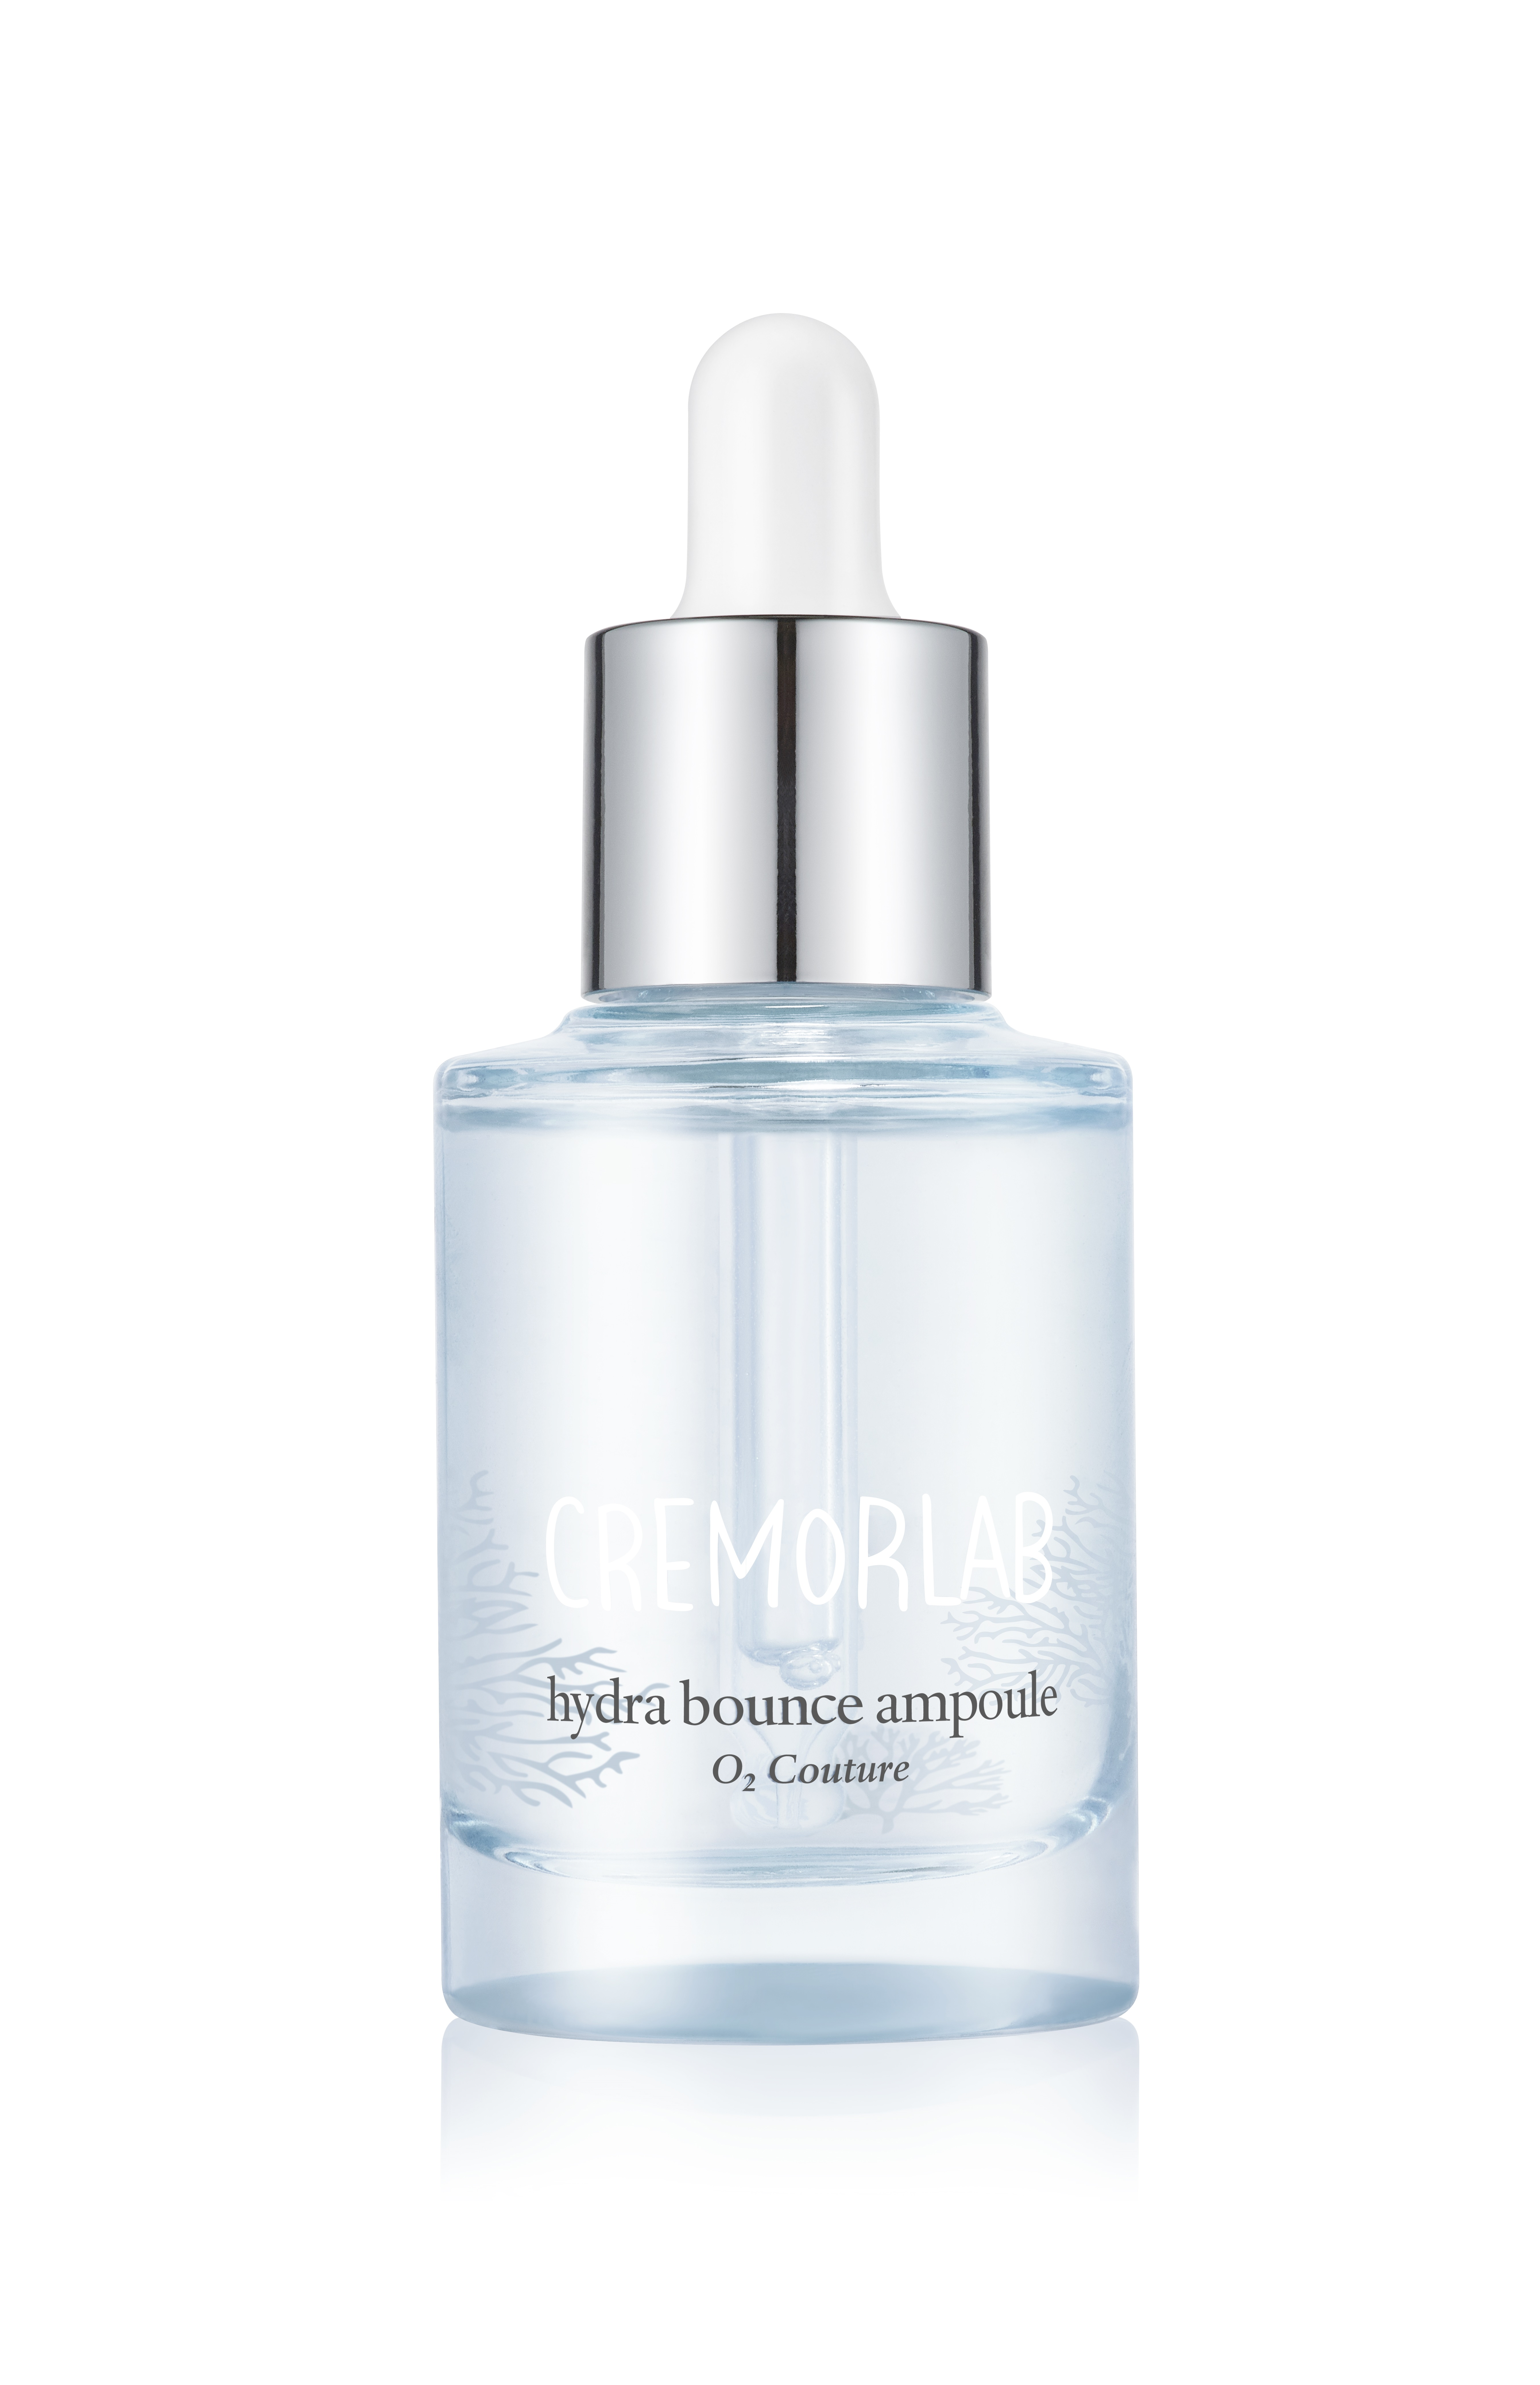 O2 Couture Hydra Bounce Ampoule 30 ml